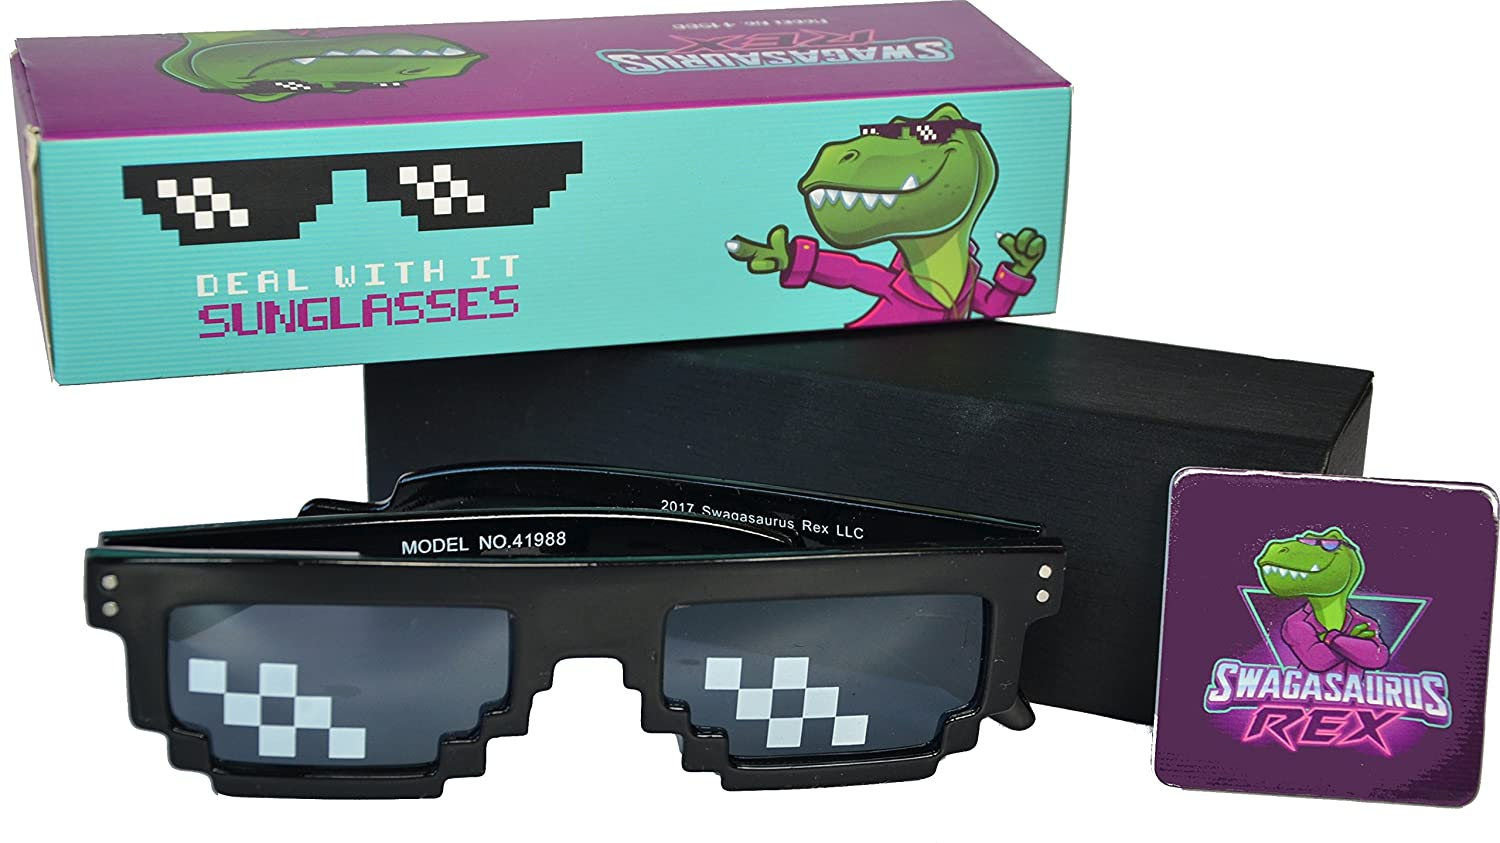 d88bf2cfa6a Amazon.com  Deal With It Glasses - Thug Life Sunglasses by Swagasaurus Rex   Toys   Games